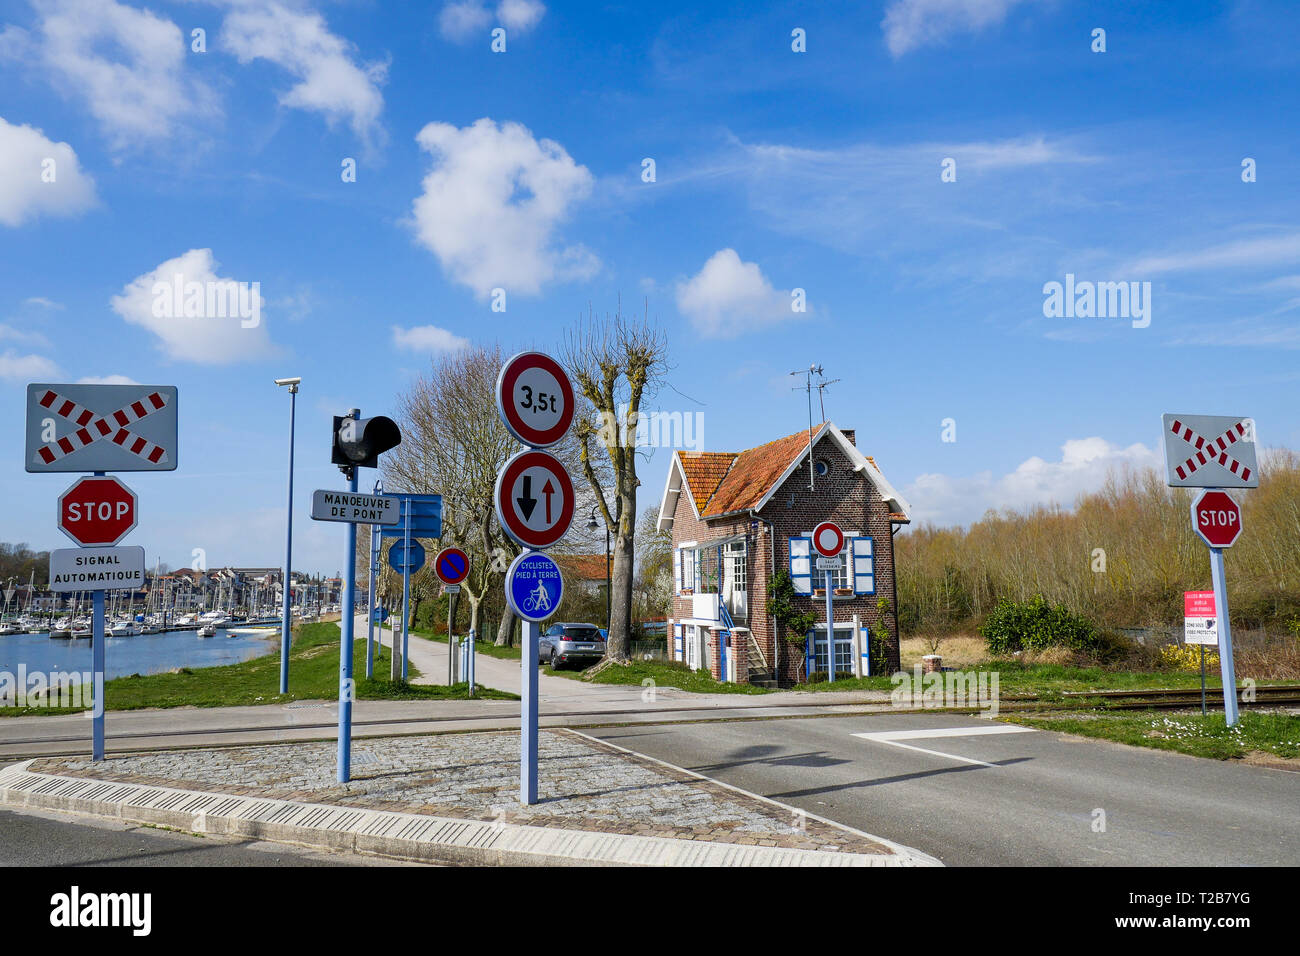 Hauling way, Saint-Valery, Bay of Somme, Somme, Haut-de-France, France - Stock Image